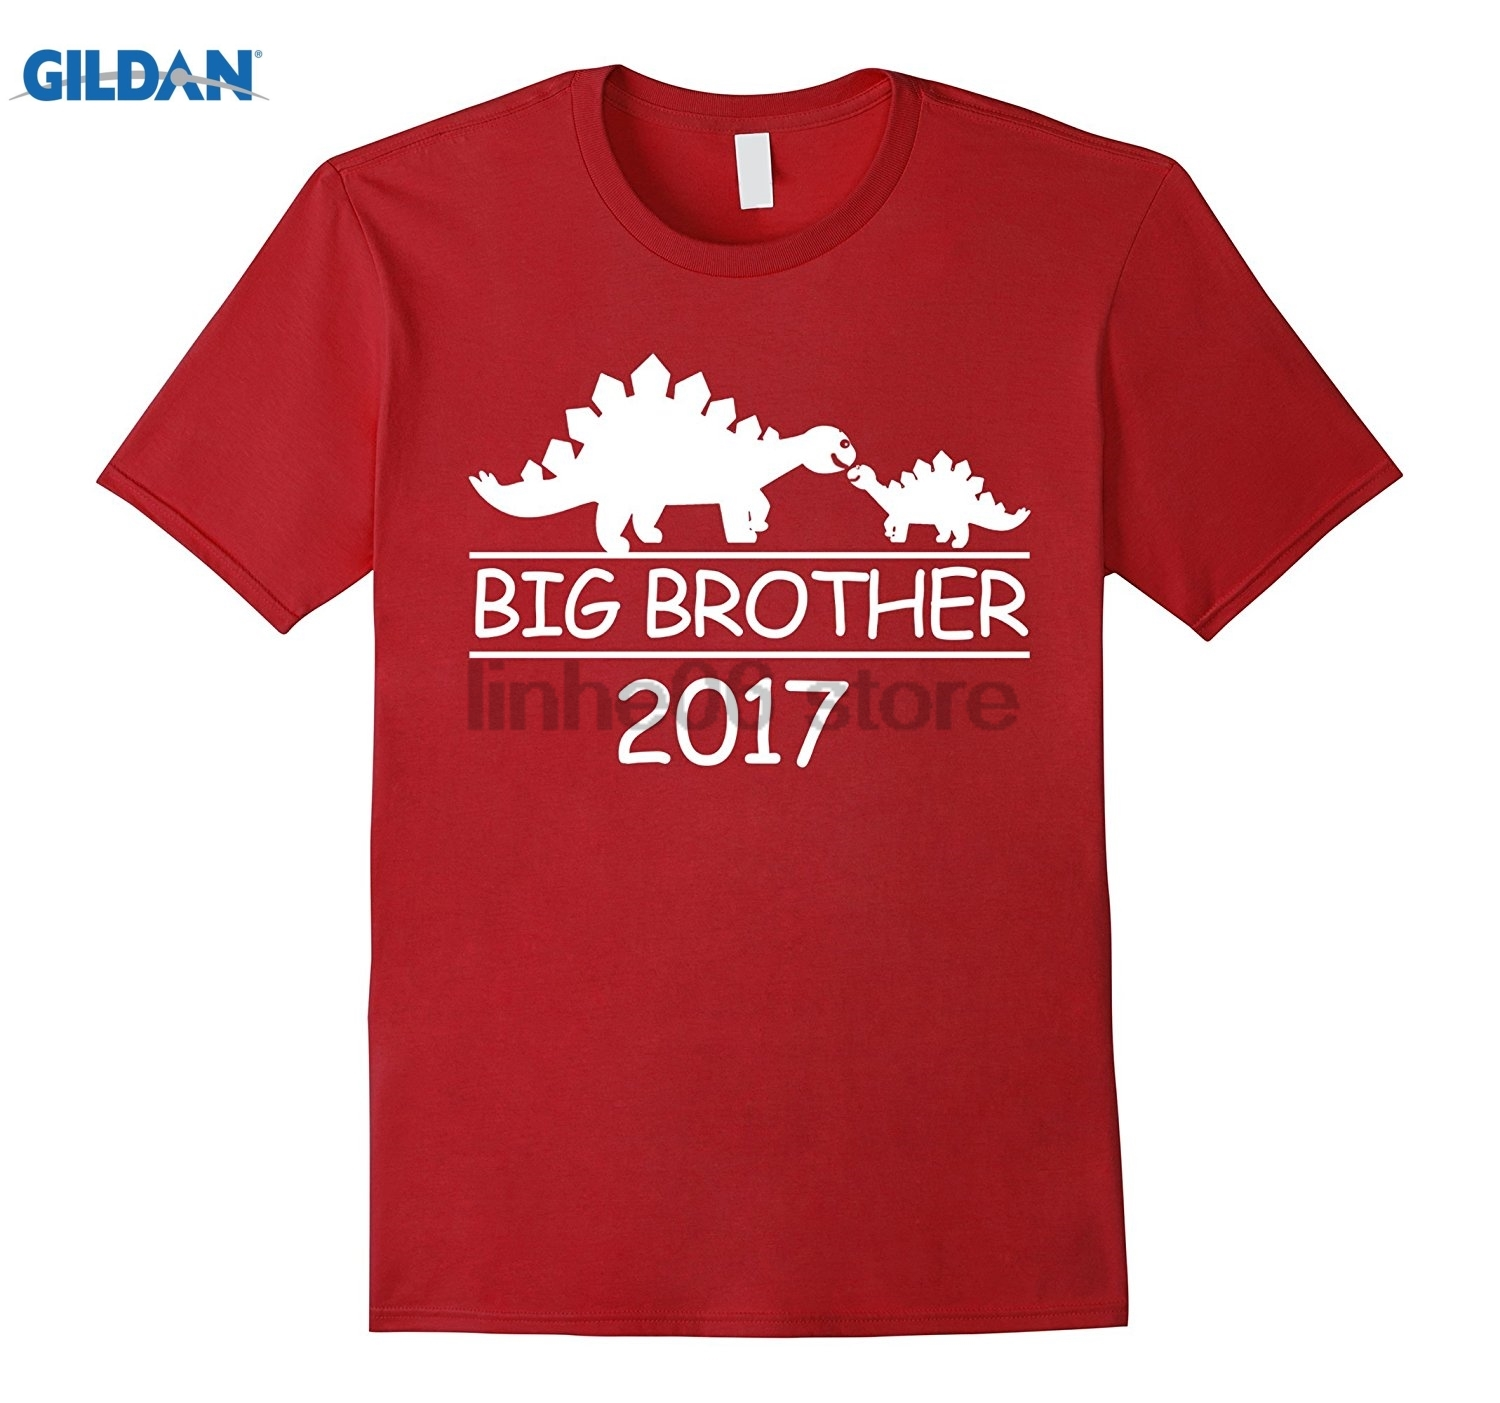 GILDAN Dinosaur Stegosaurus Big Brother 2017 T-Shirt sunglasses women T-shirt